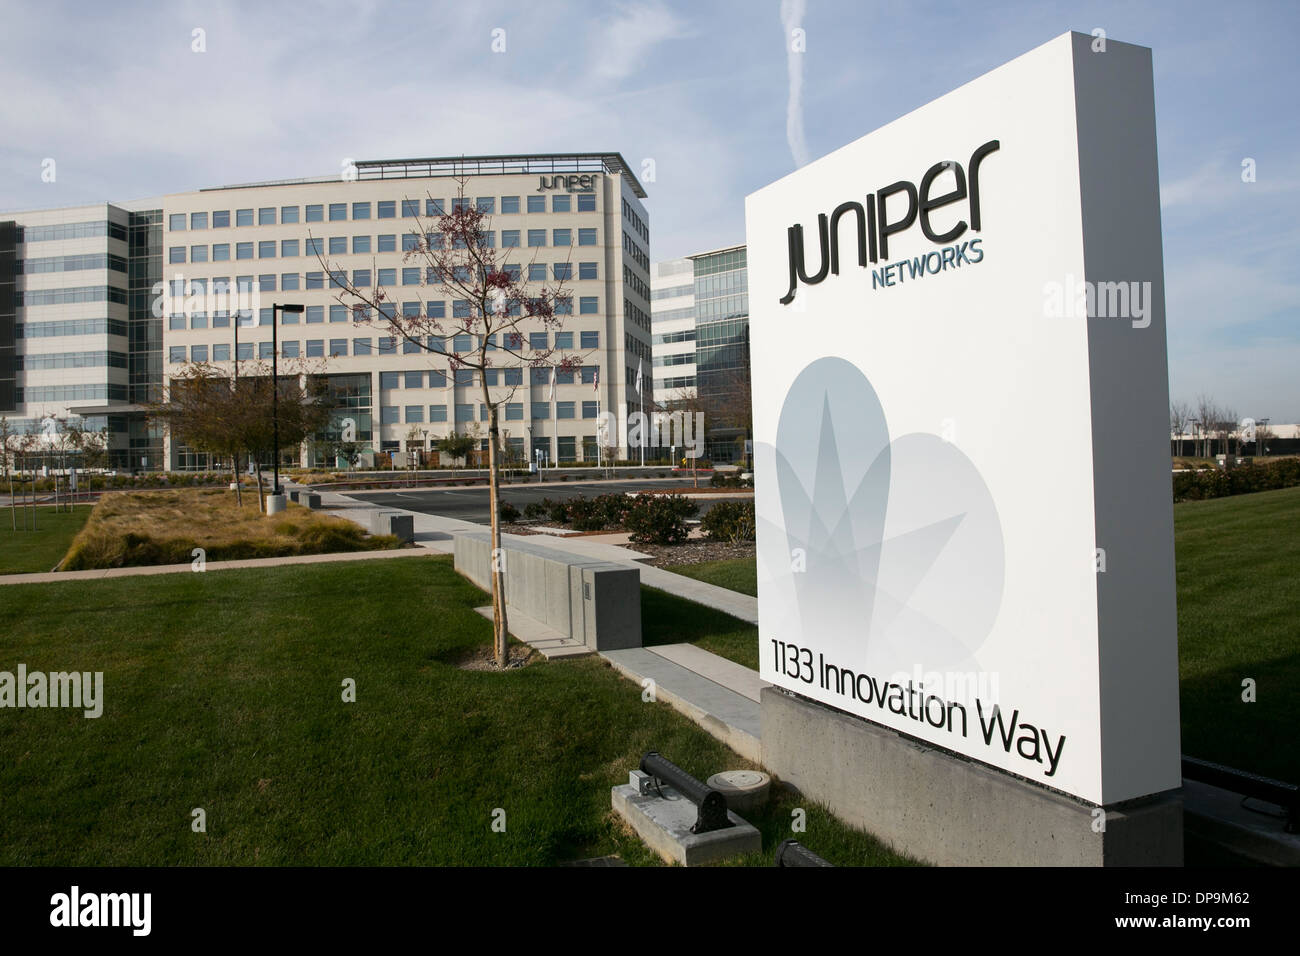 The headquarters of Juniper Networks in Sunnyvale, California Stock